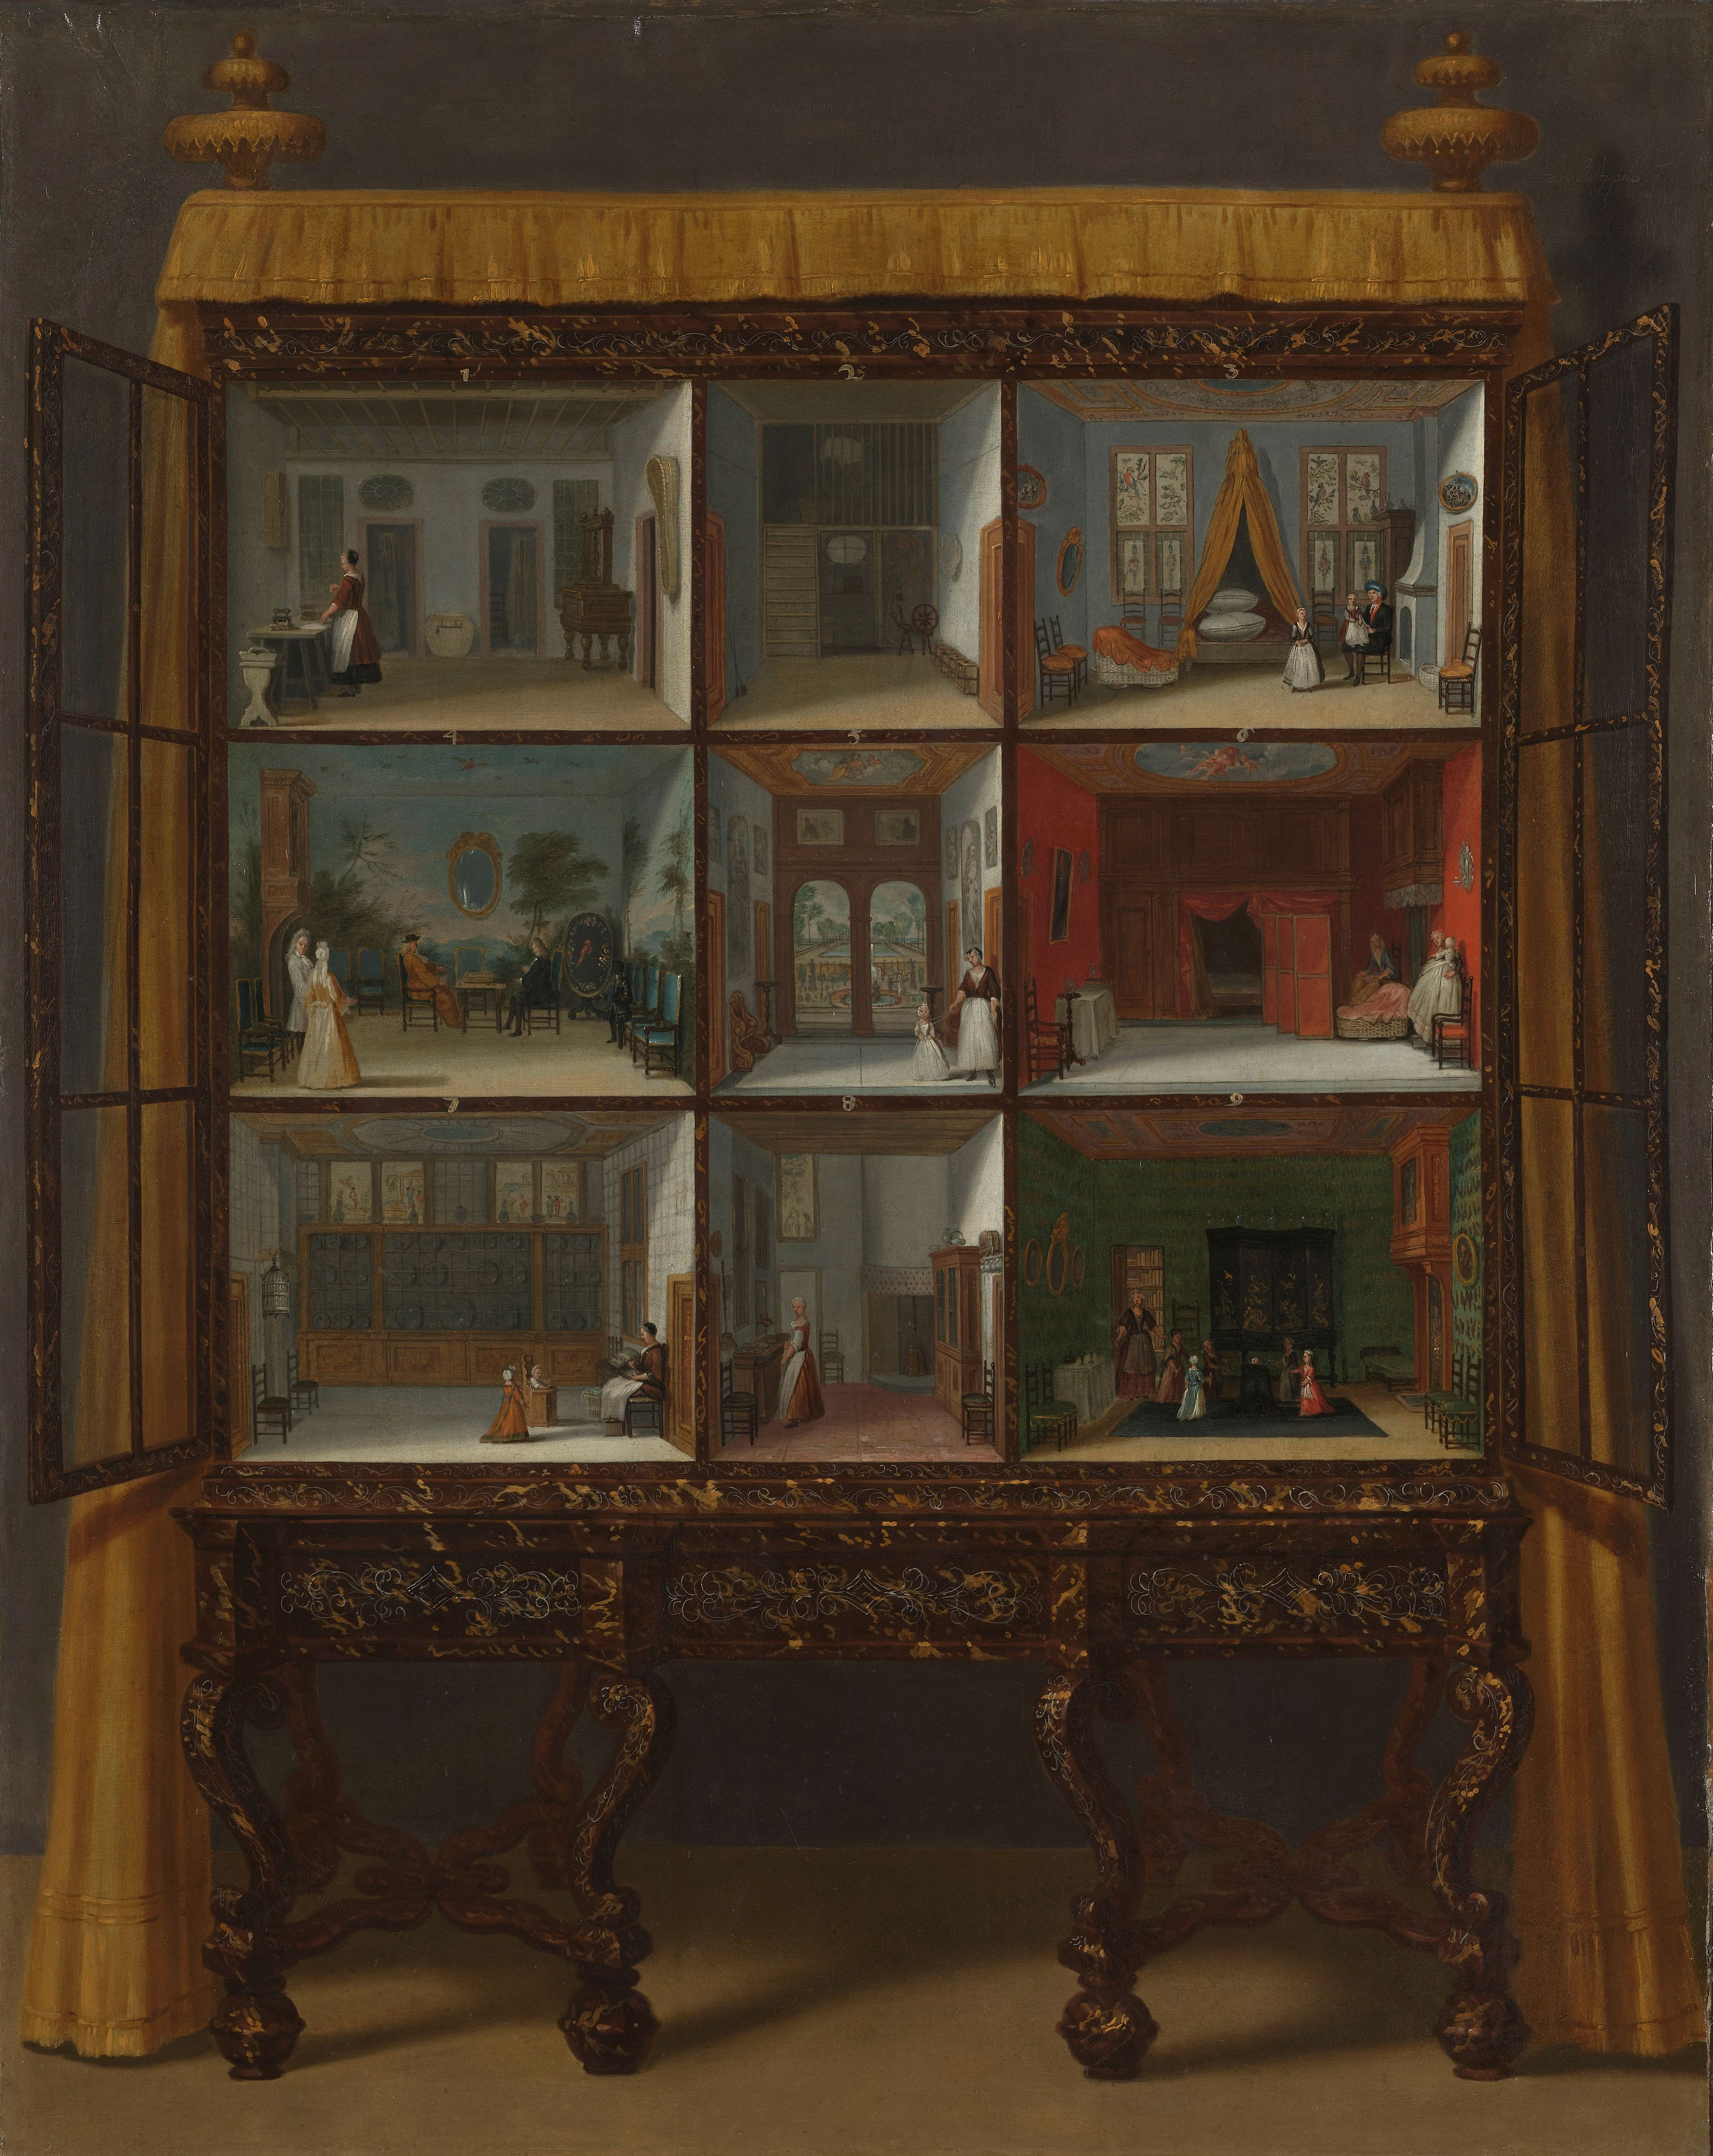 dolls house historical analysis In the case of a doll's house, both the world of the play and the world ibsen lived in are the sameibsen wrote a doll's house in norway in 1879, and the play presumably took place sometime in the same decade.